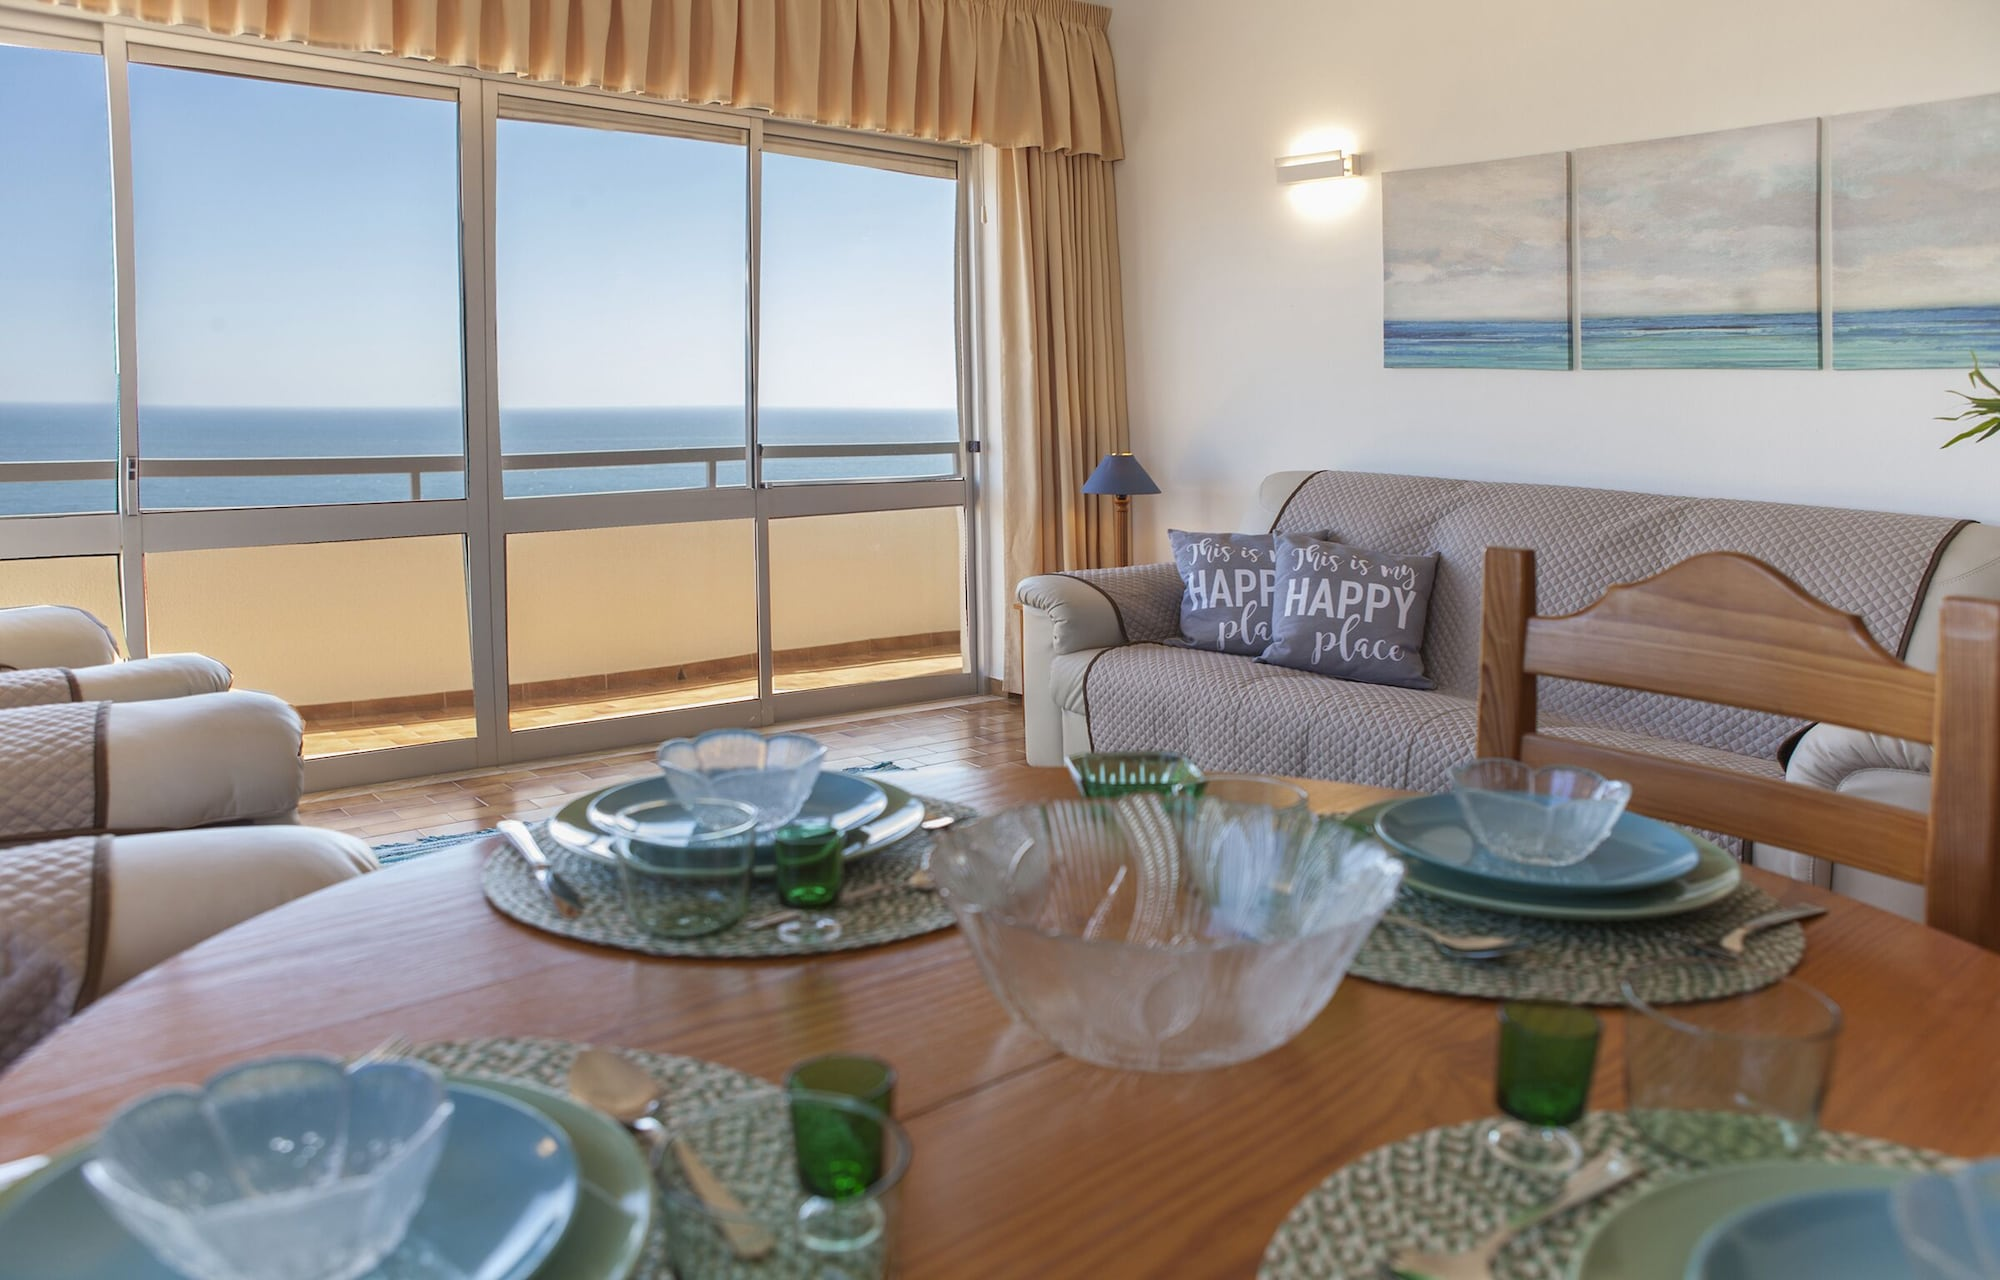 B43 - Spotless Seaview Apartment, Portimão